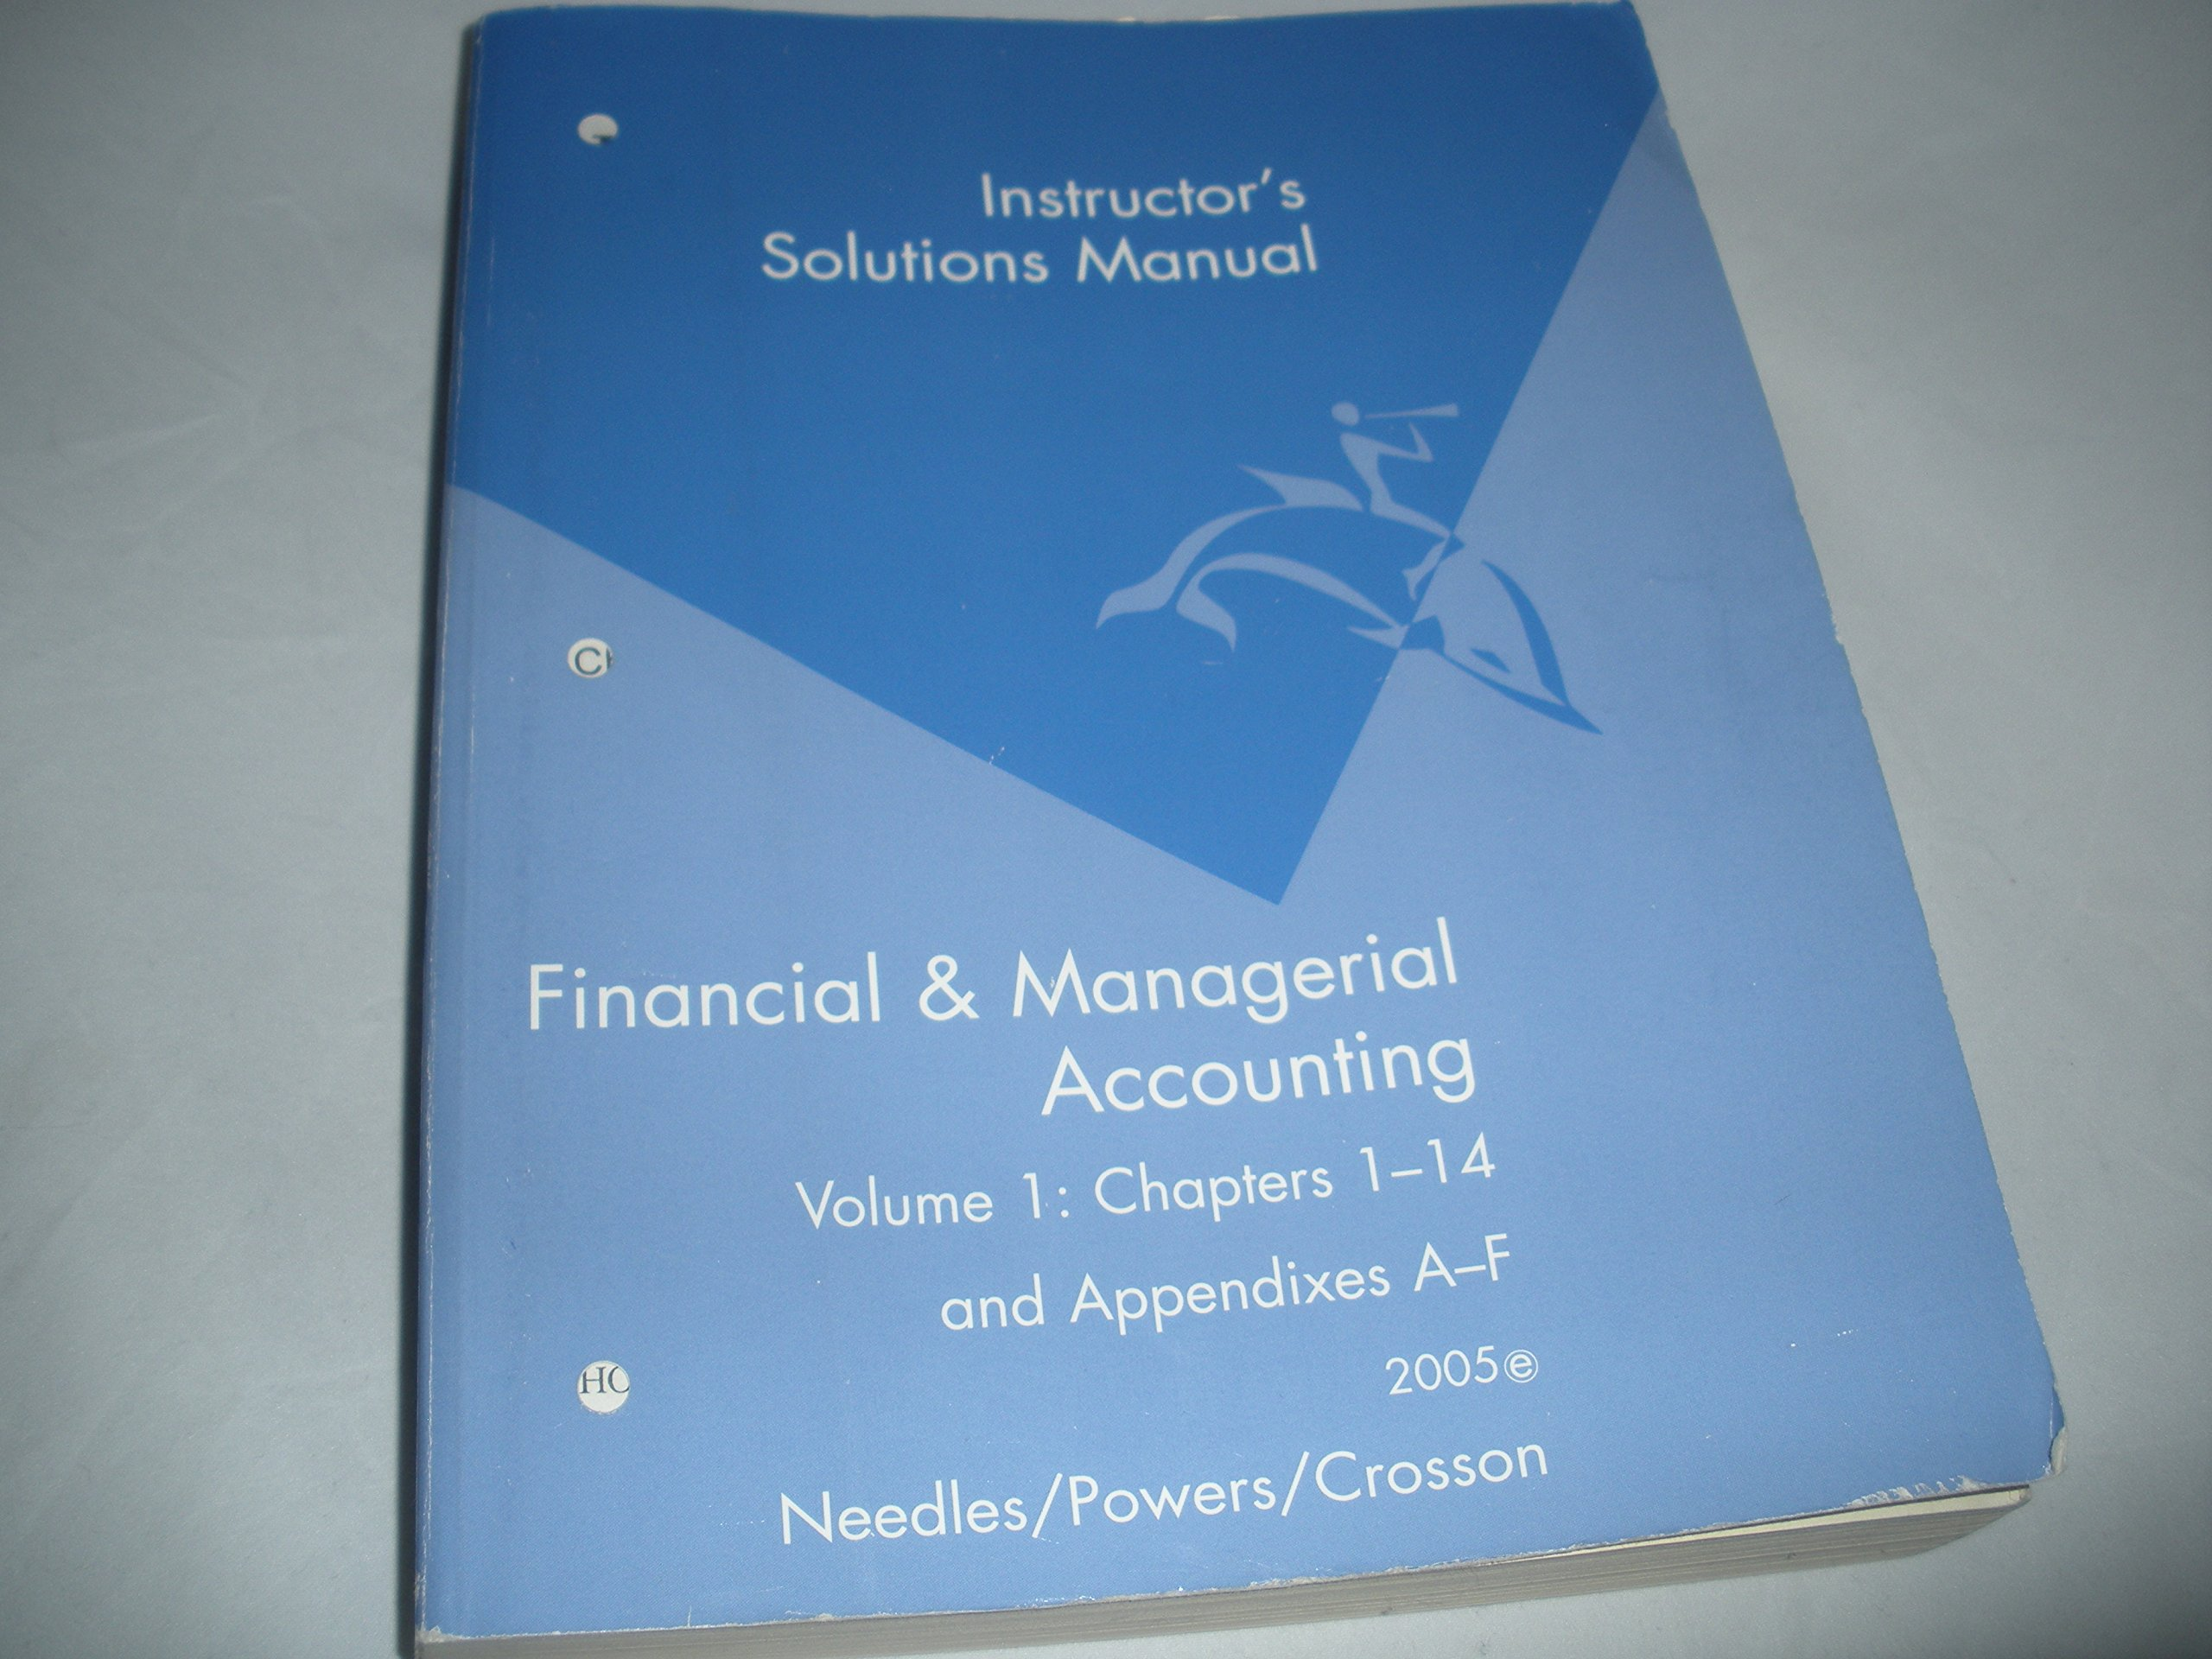 Instructor's Solutions Manual for Use with Financial & Managerial Accounting  Volume 1: Chapters 1-14 and Appendixes A-F: Powers, Crosson Needles: ...